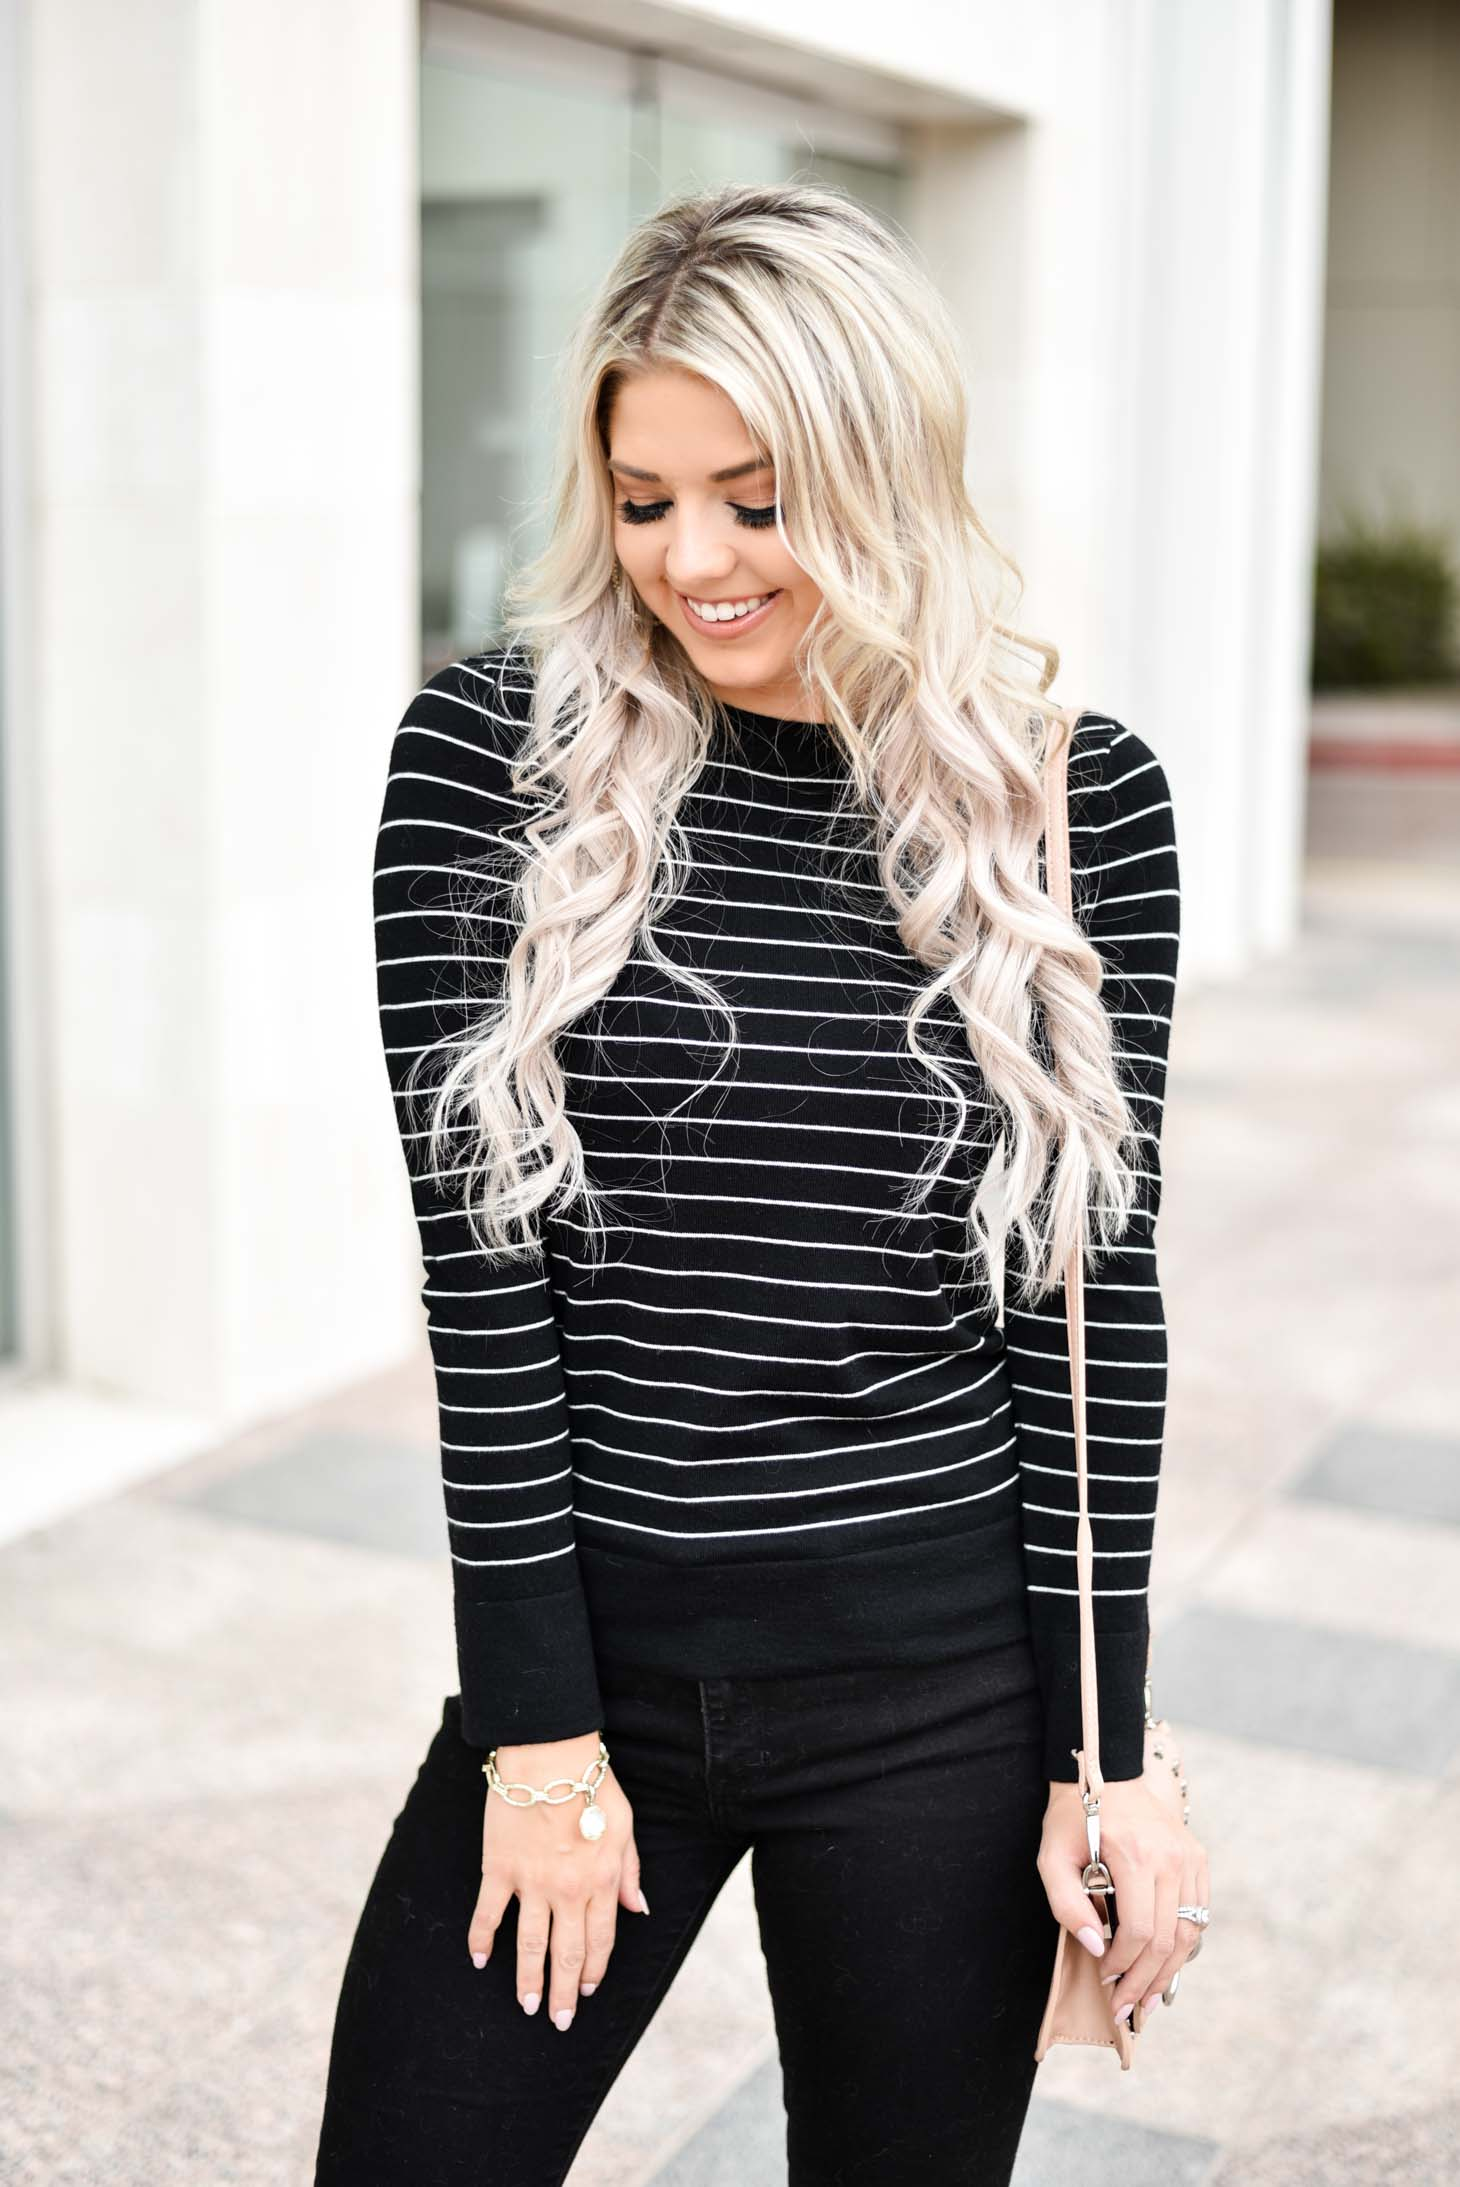 Erin Elizabeth of Wink and a Twirl shares two classic sweaters from J.Ing Official